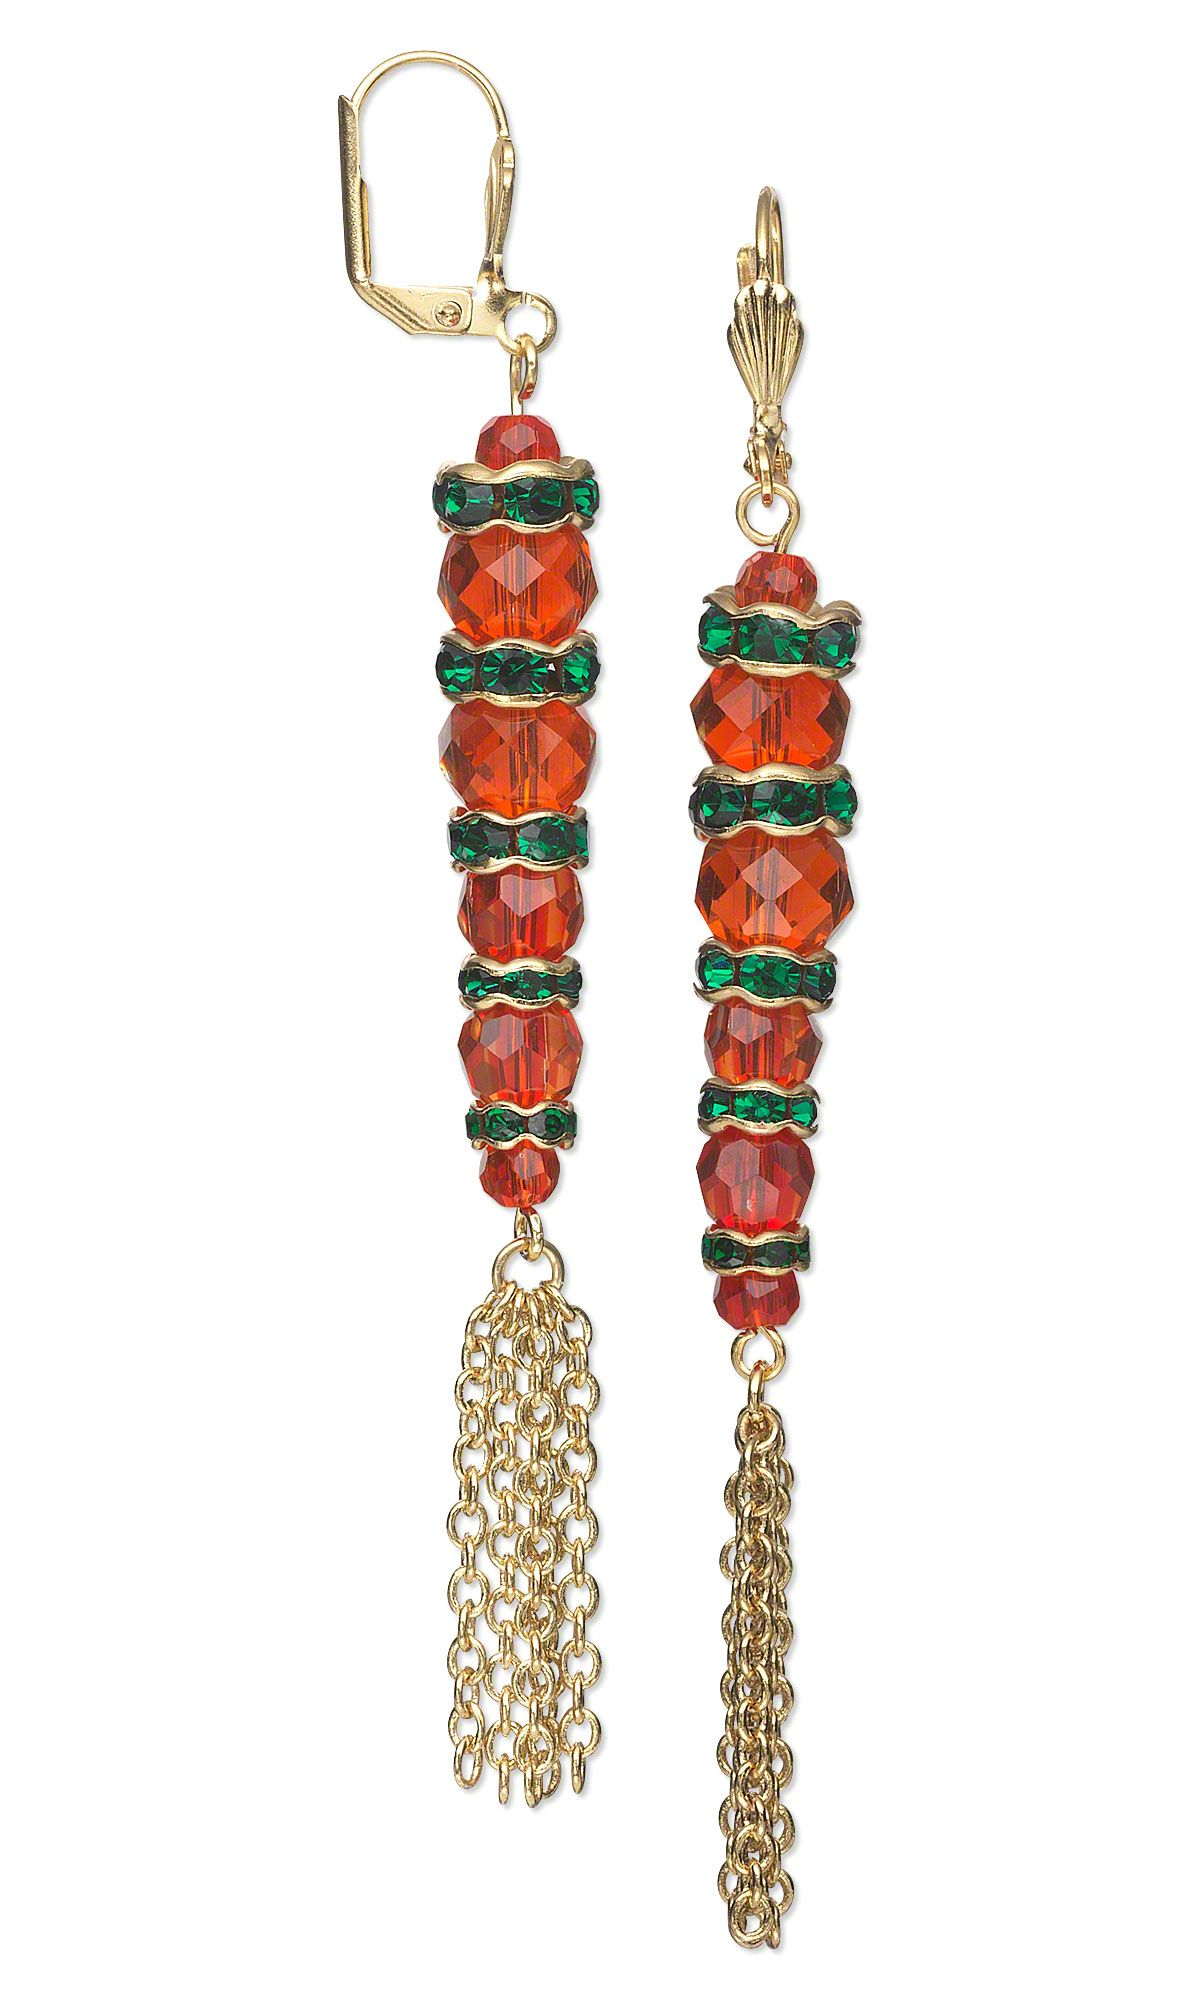 Jewelry Design - Earrings with Celestial Crystal® Beads and Gold ...